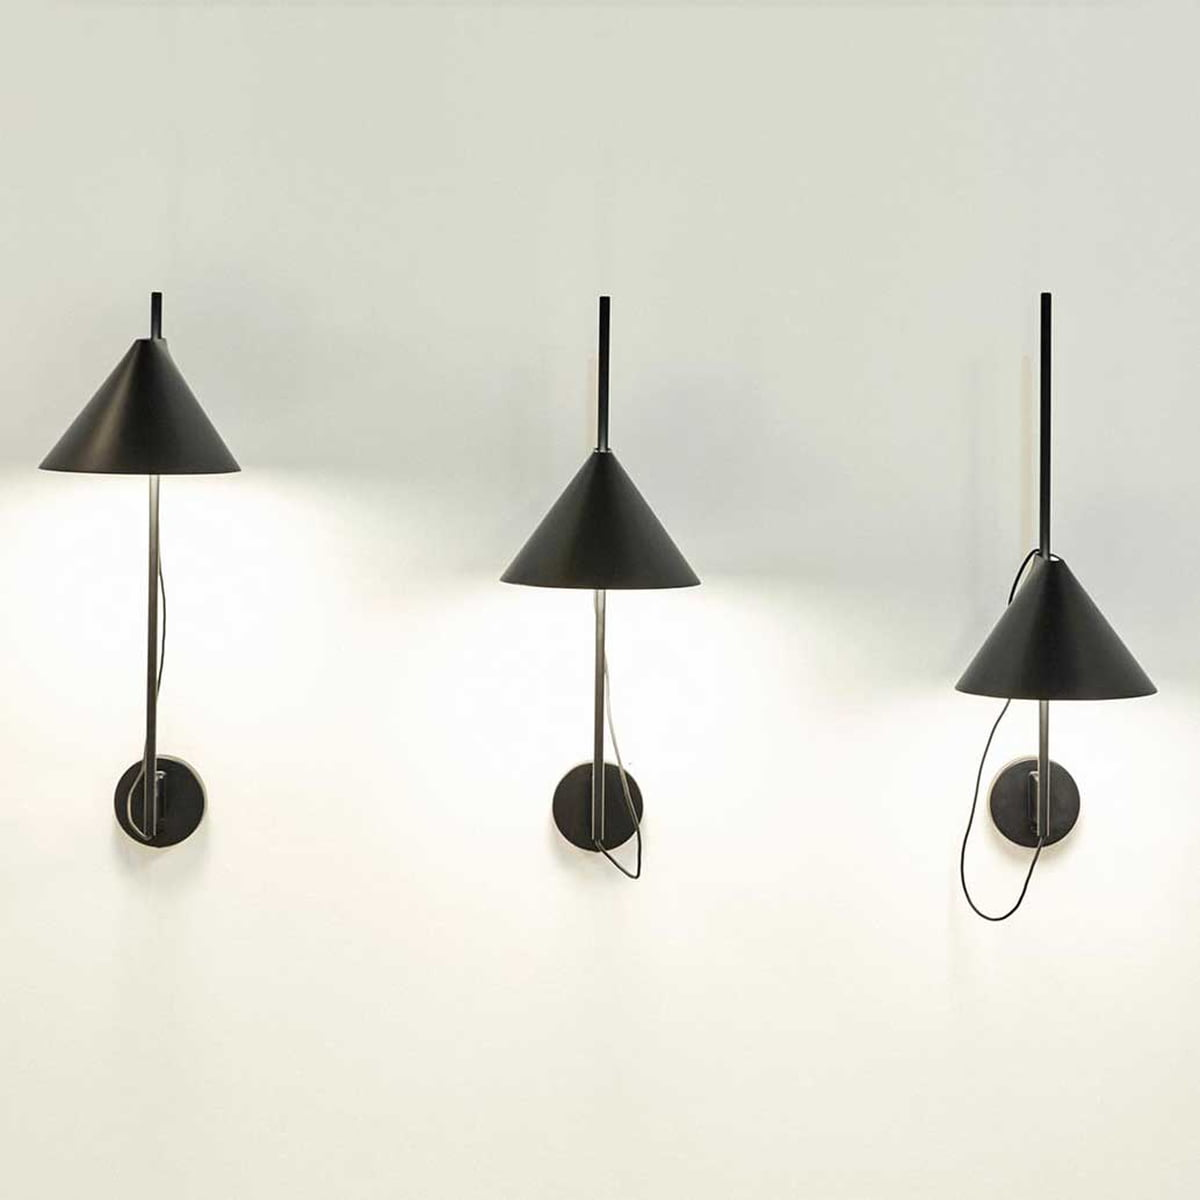 yuh wall lamp by louis poulsen connox. Black Bedroom Furniture Sets. Home Design Ideas